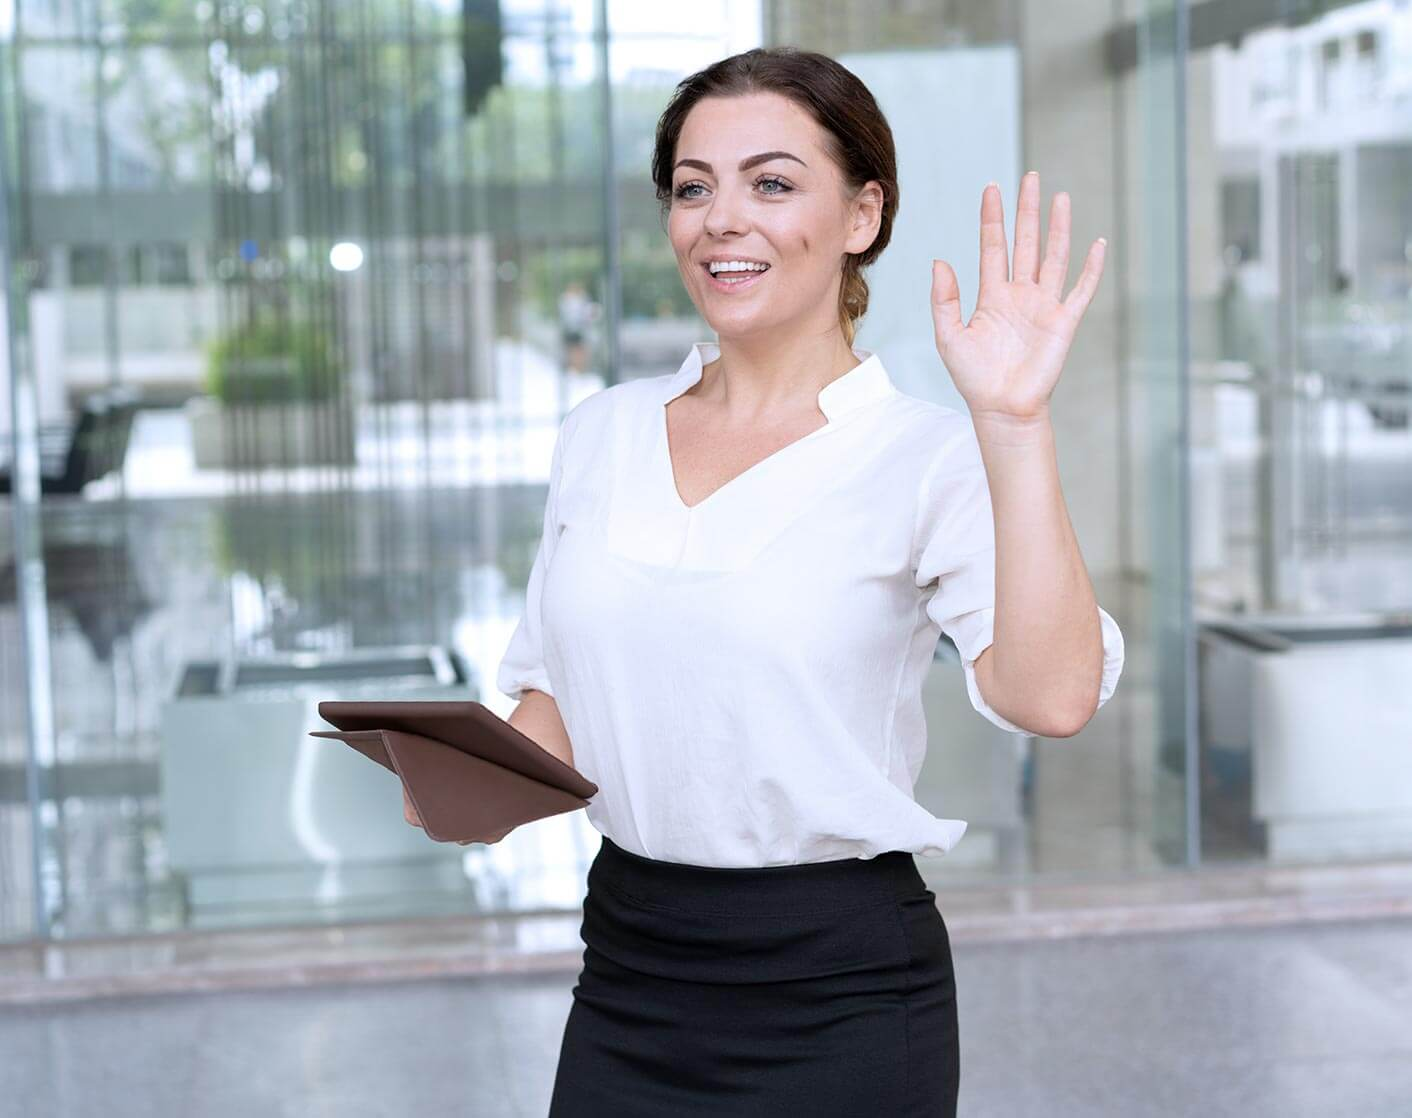 white woman outside store holding a tablet and waving to someone not seen